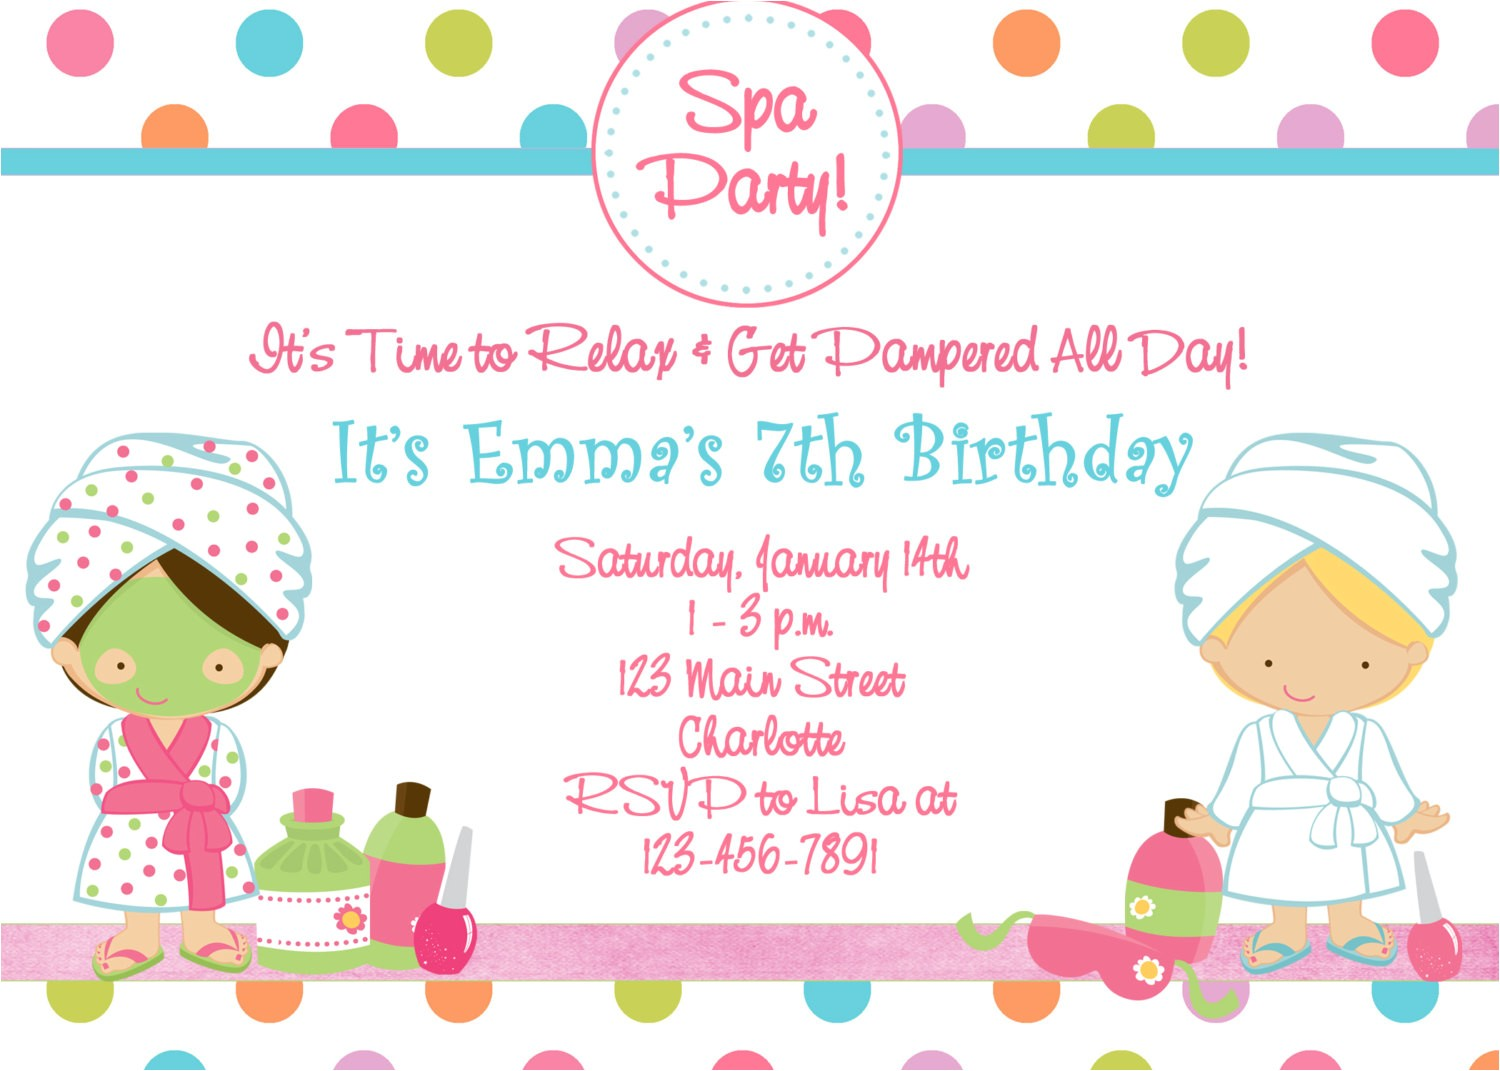 Spa Birthday Party Invitations Printables Free Free Printable Spa Birthday Party Invitations Pool